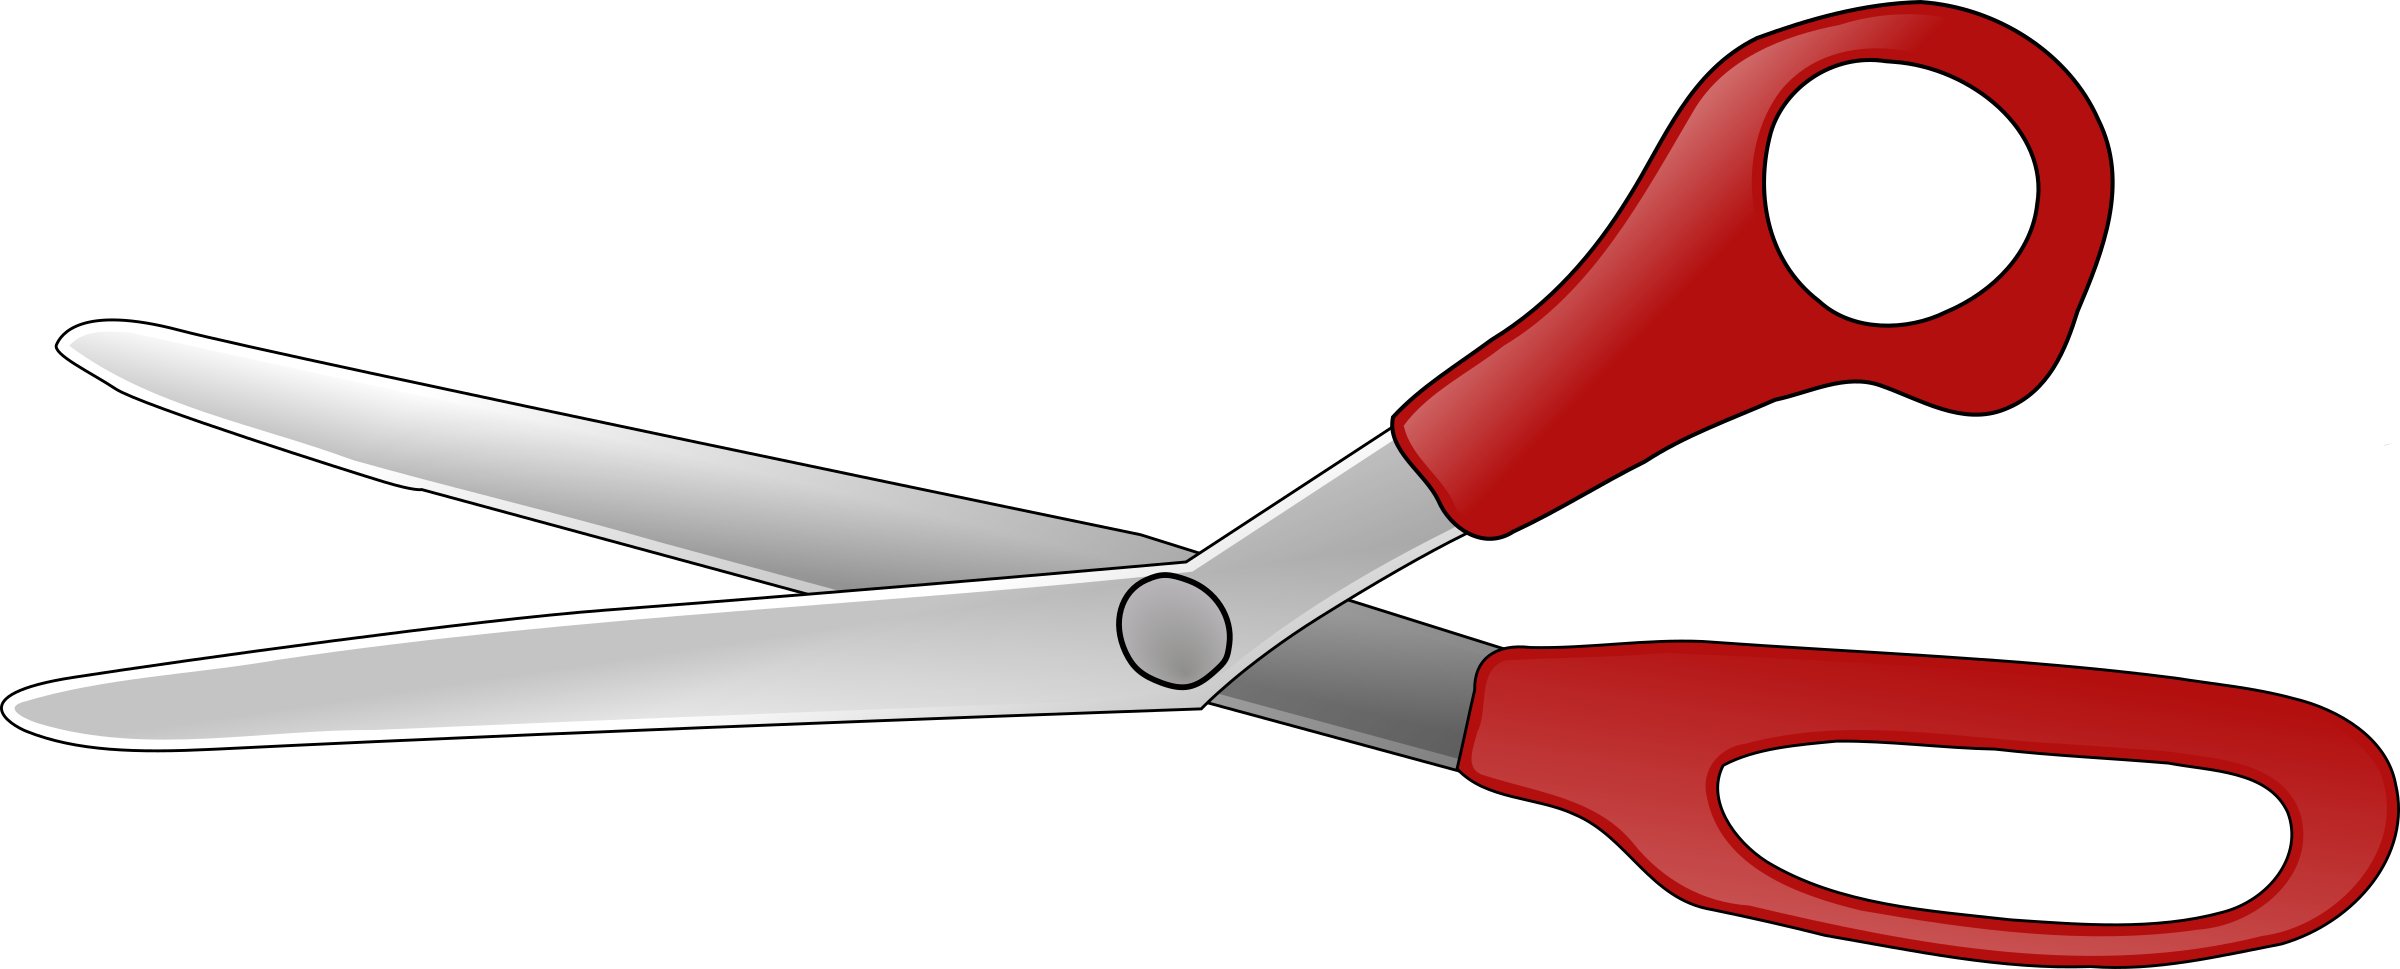 Shears clipart sewing accessory. Png of a pair